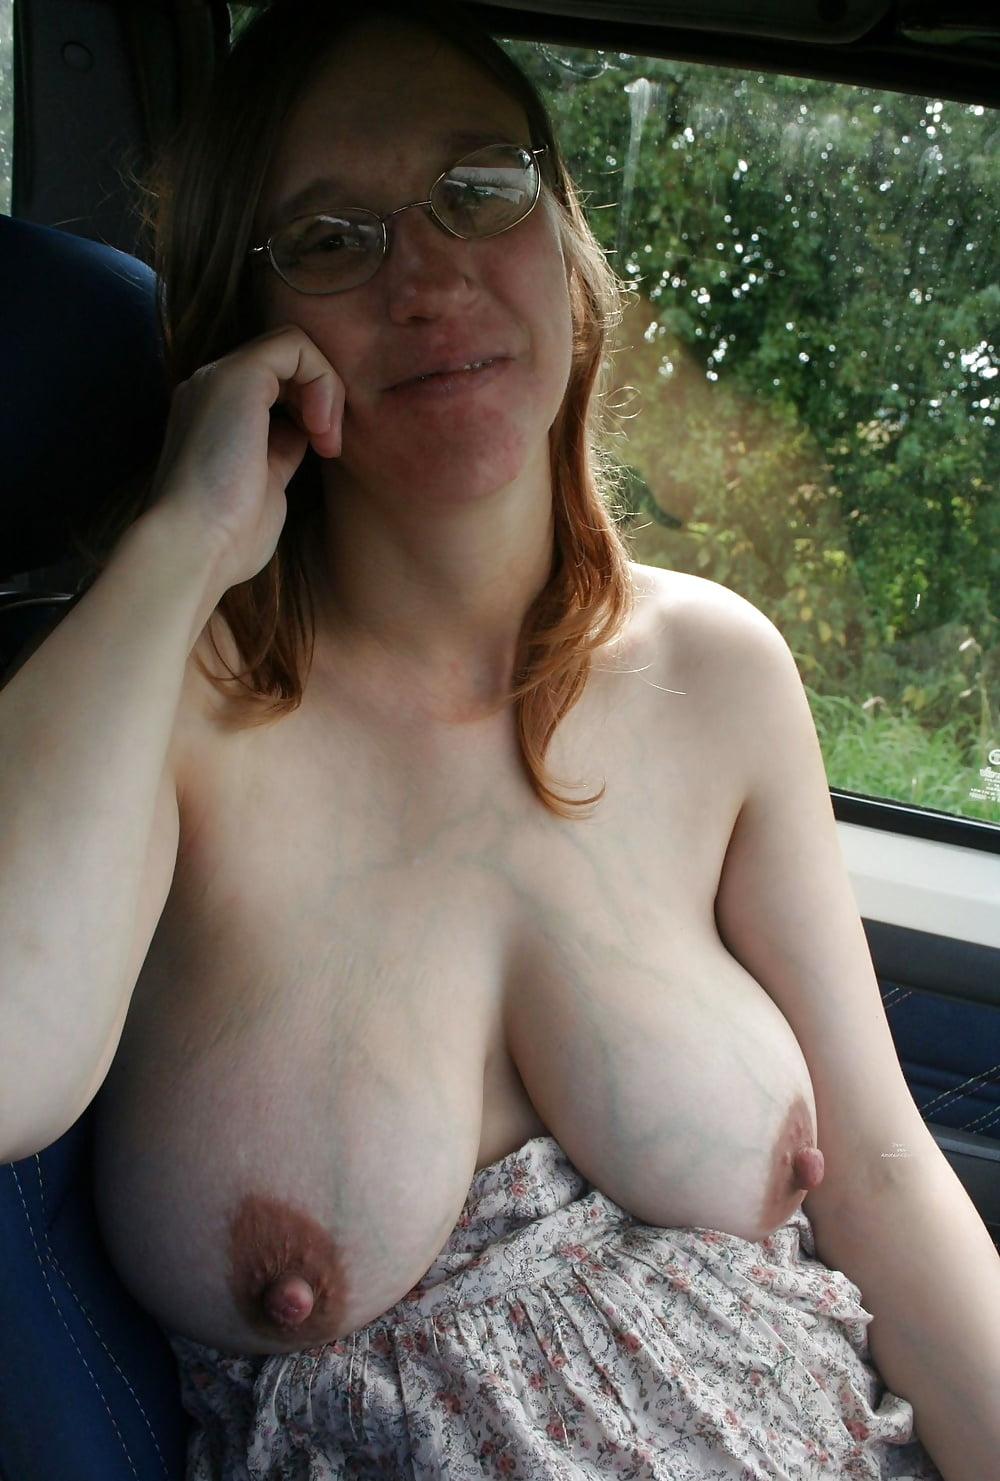 over-saggy-breasts-pictures